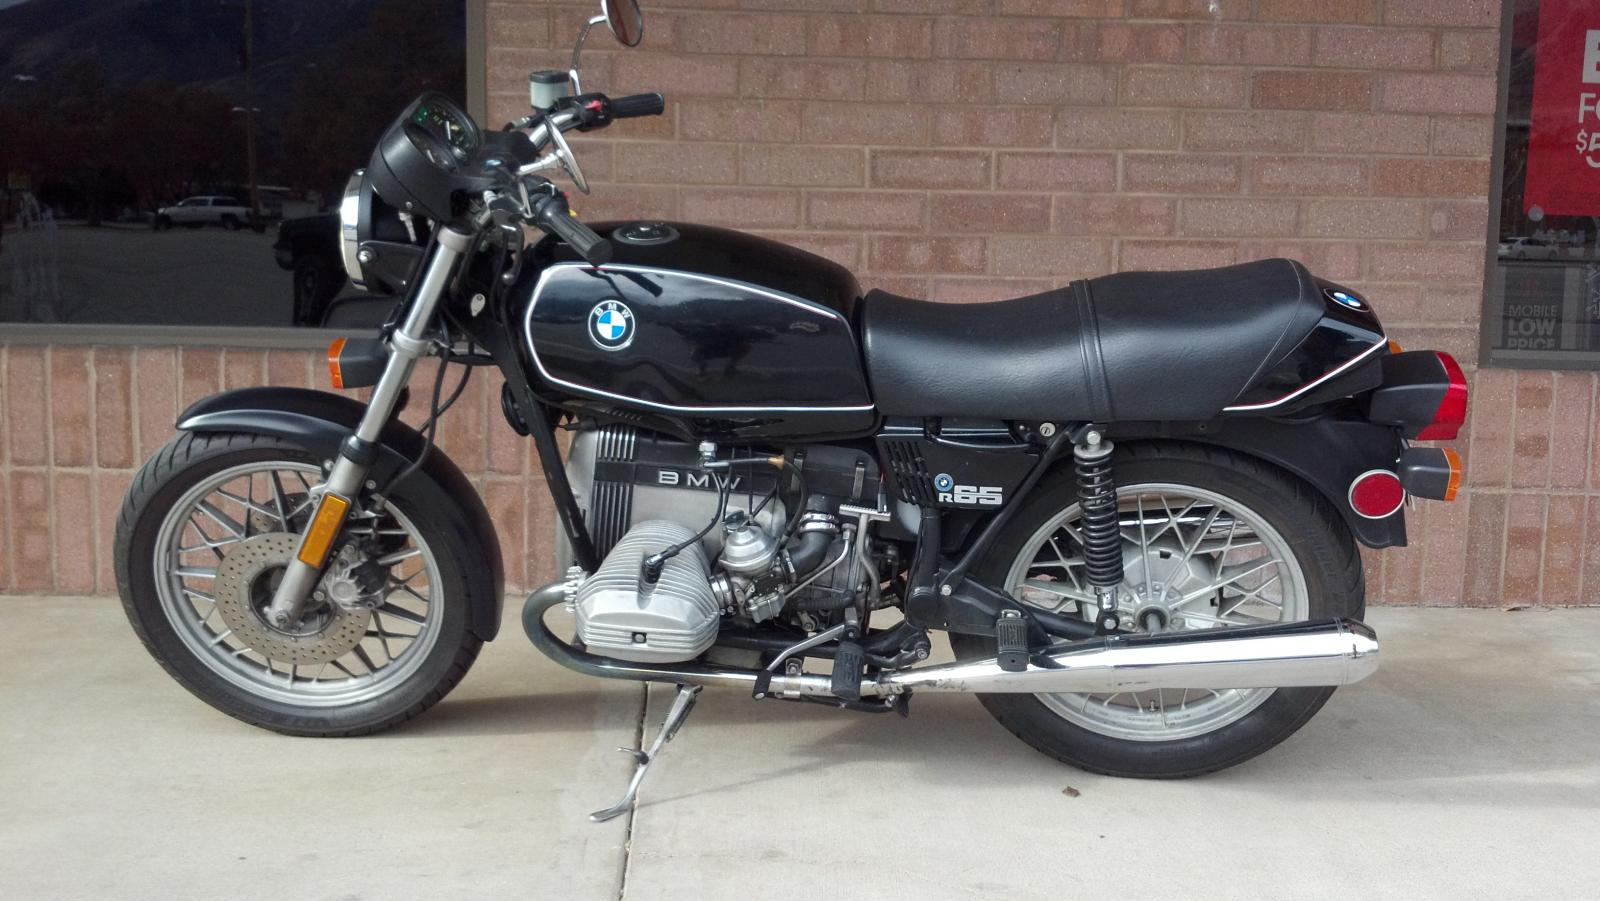 1980 BMW R45 (reduced effect) #6